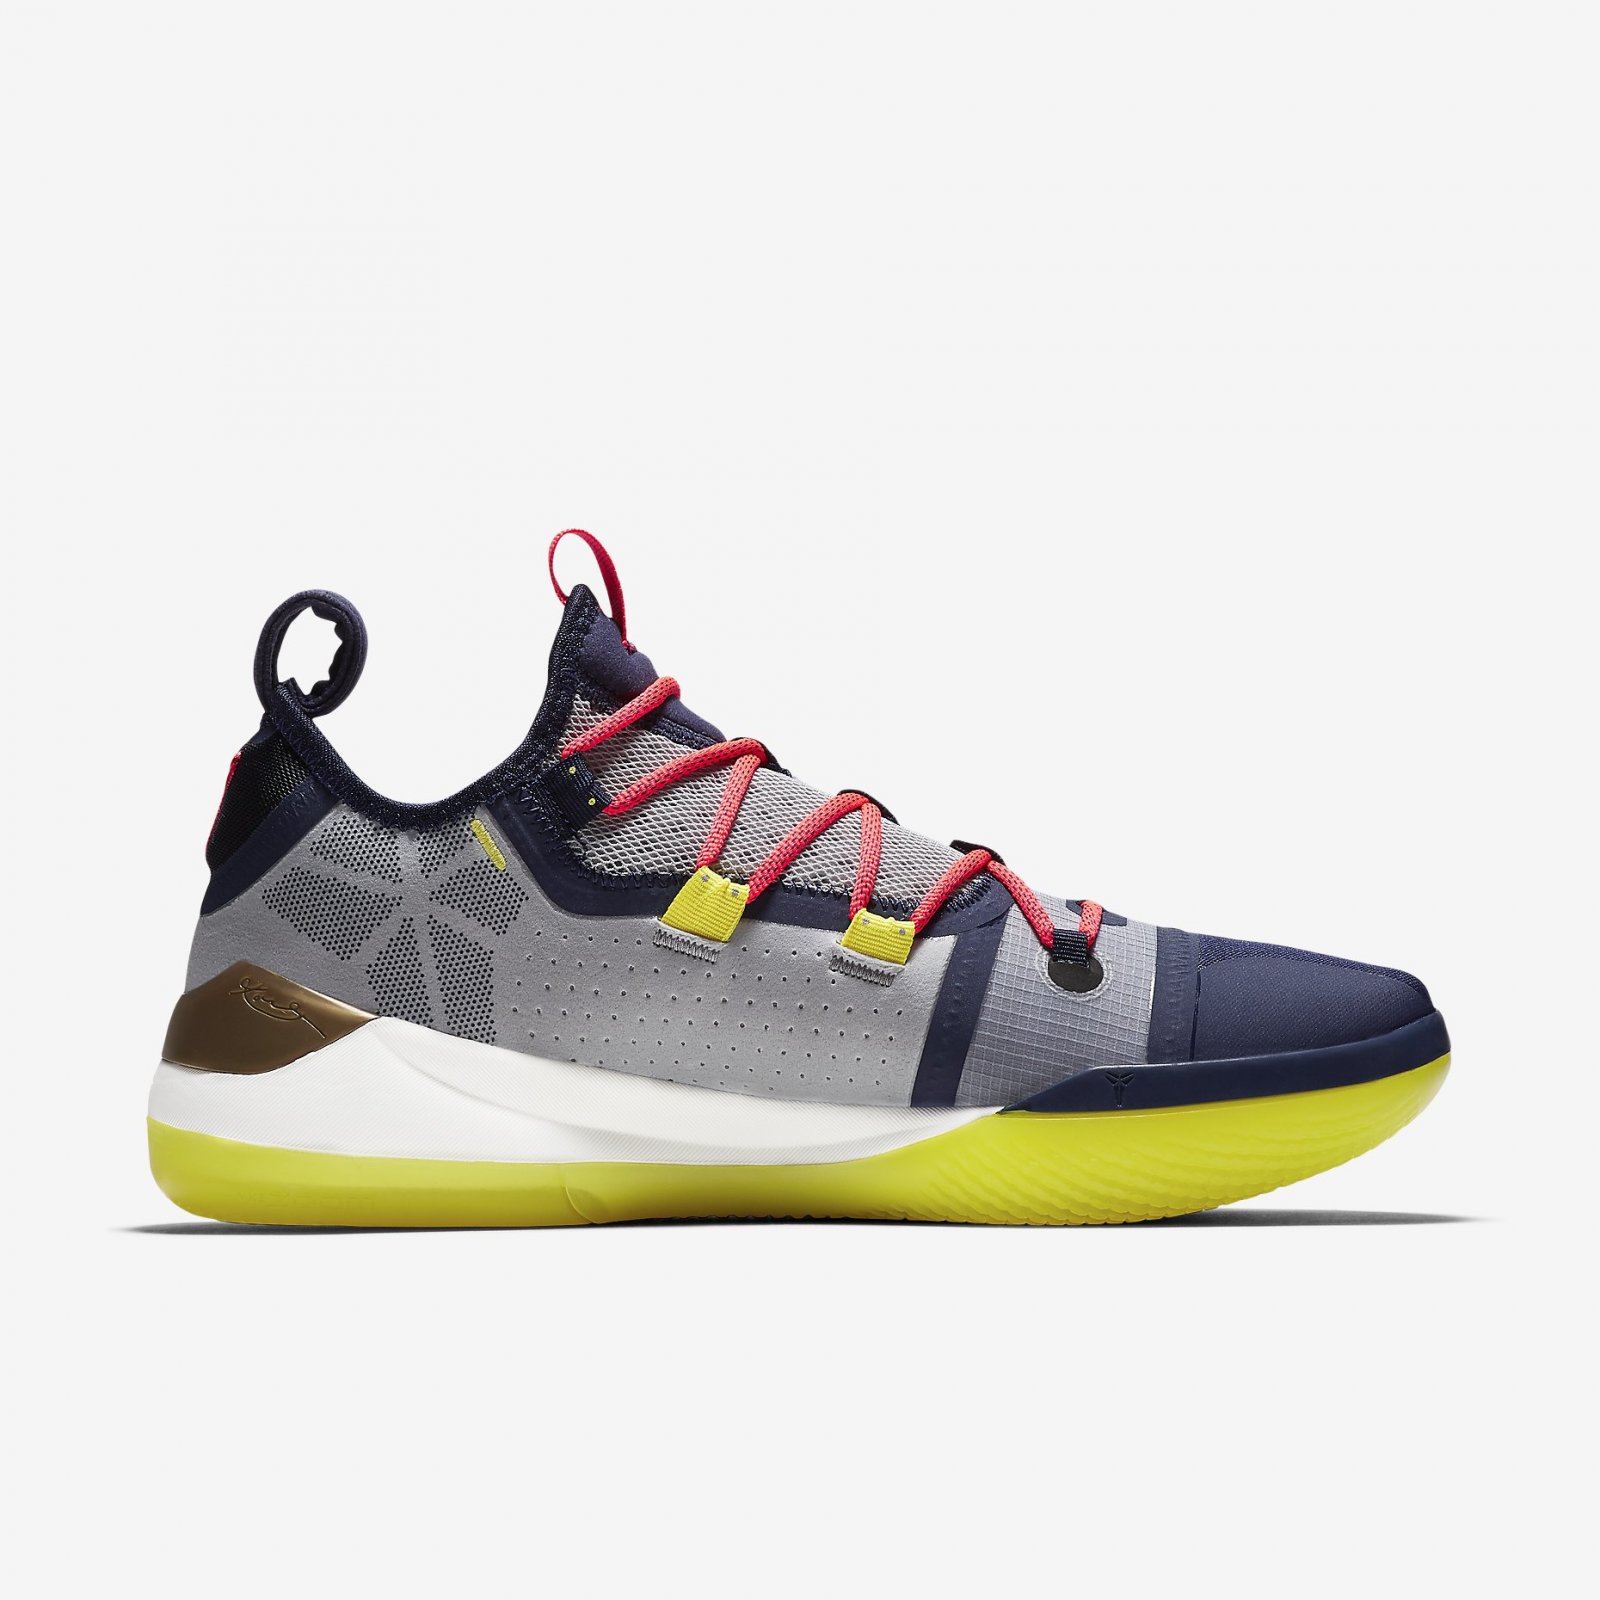 90b2a406c67 Nike Kobe AD EP Sail Multi-Color Mamba Day Men s Basketball Shoes AV3556-100.  Nike